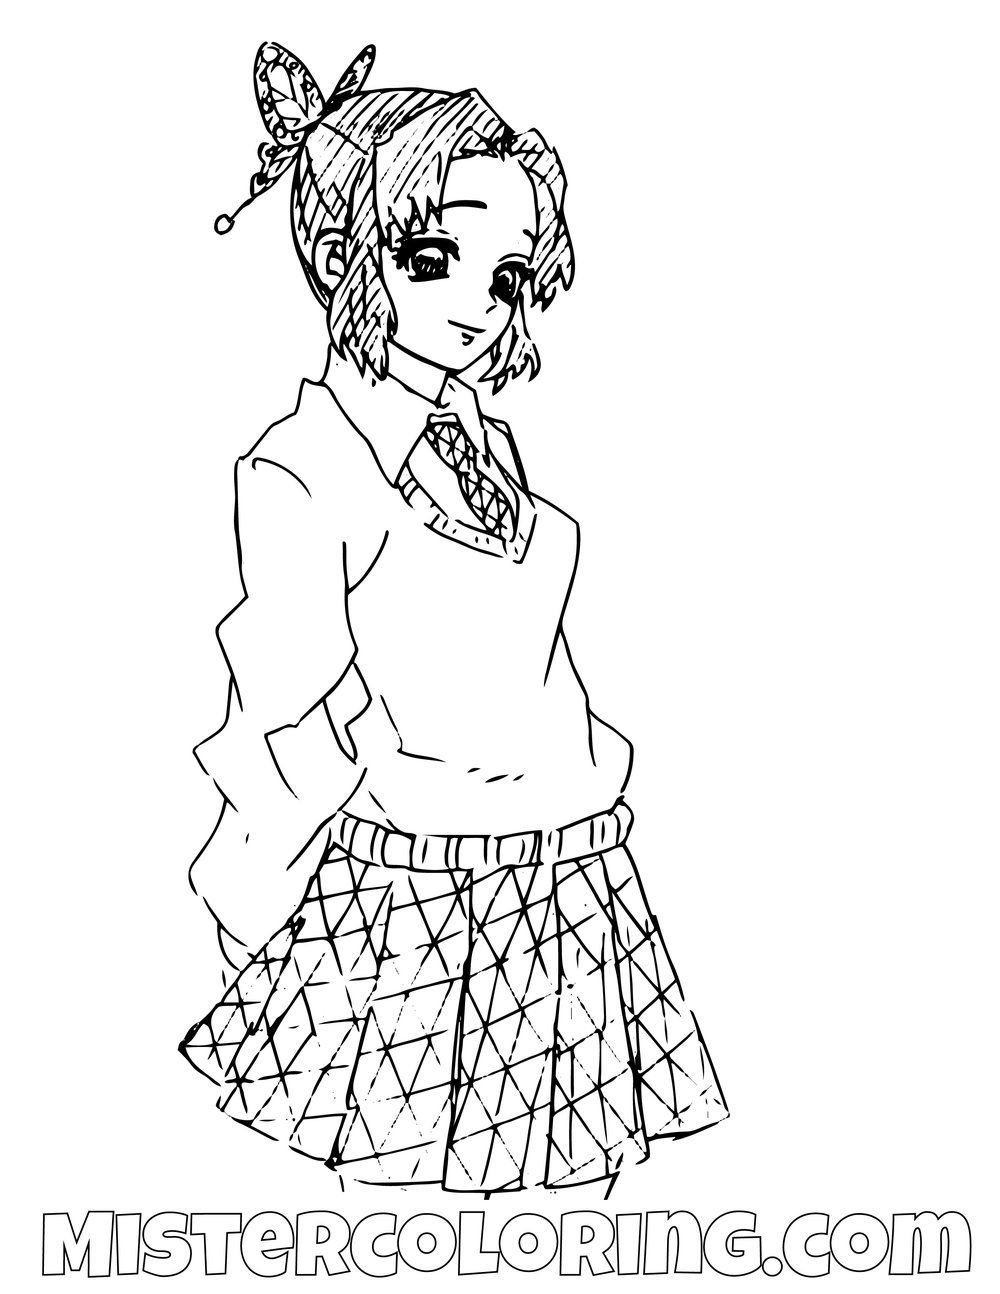 Shinobu Kocho Demon Slayer Coloring Pages For Kids Chibi Coloring Pages Noragami Anime Coloring Pages